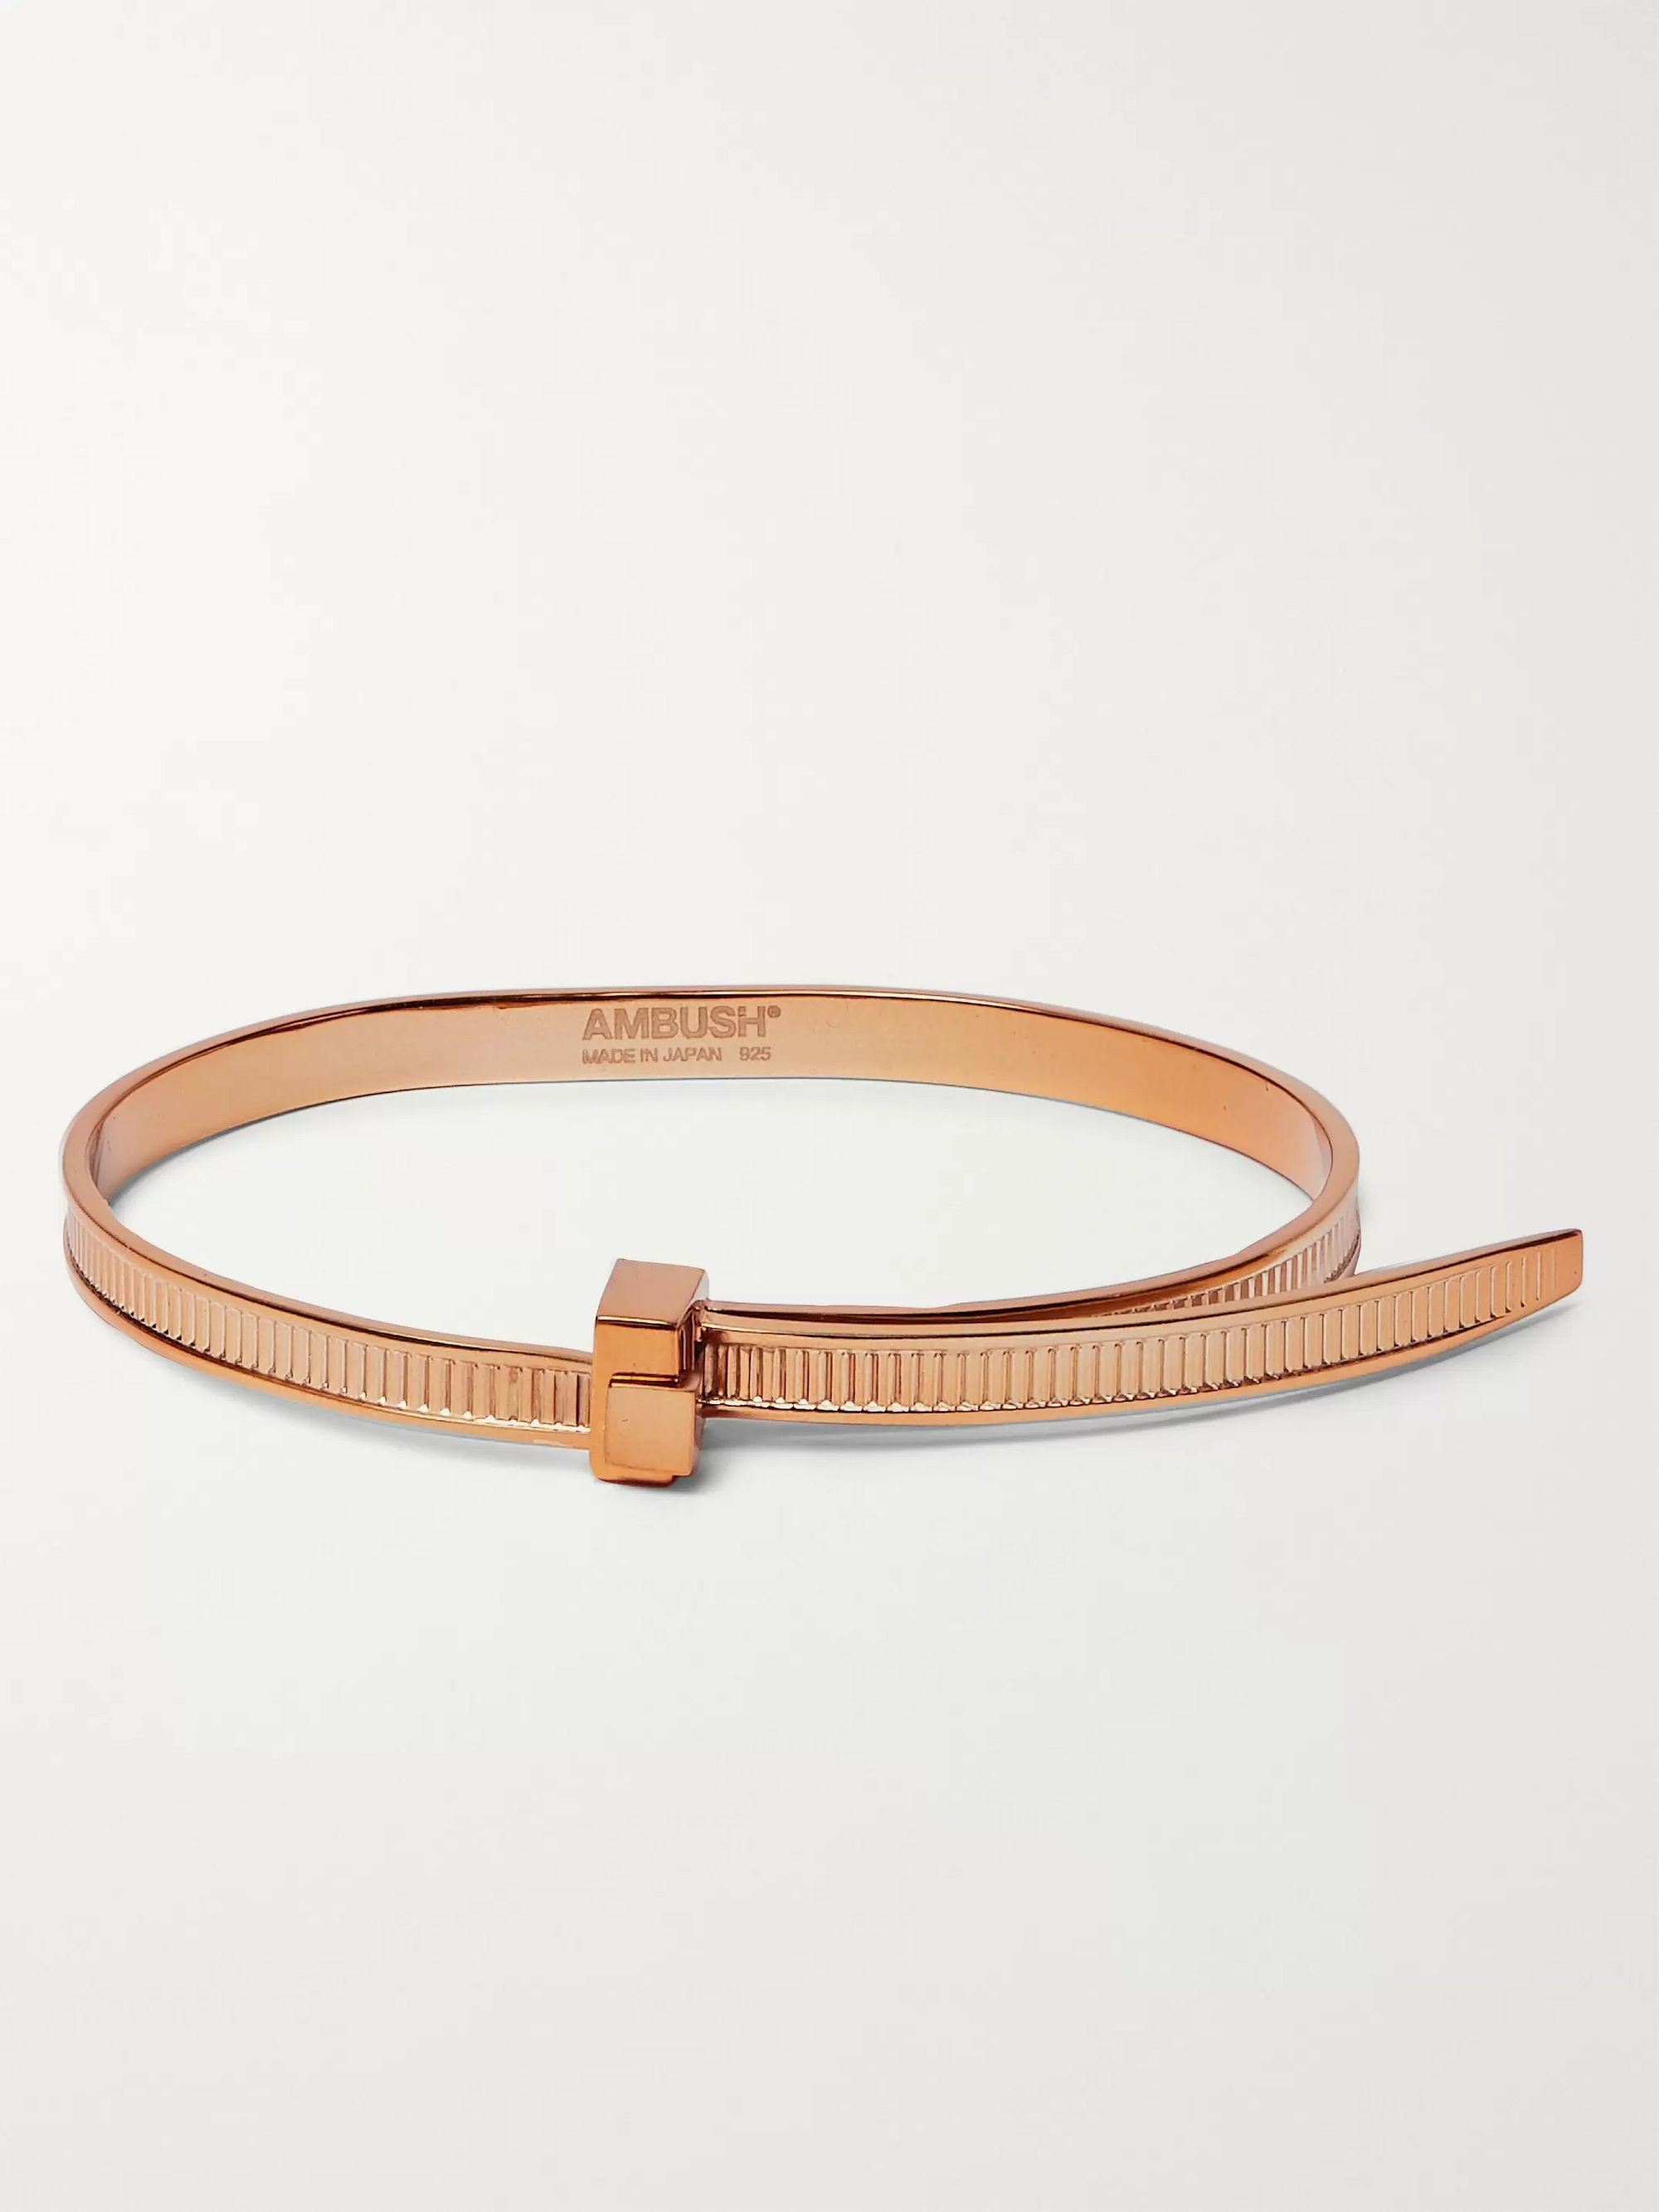 AMBUSH Zip Tie Bronze-Plated Bracelet